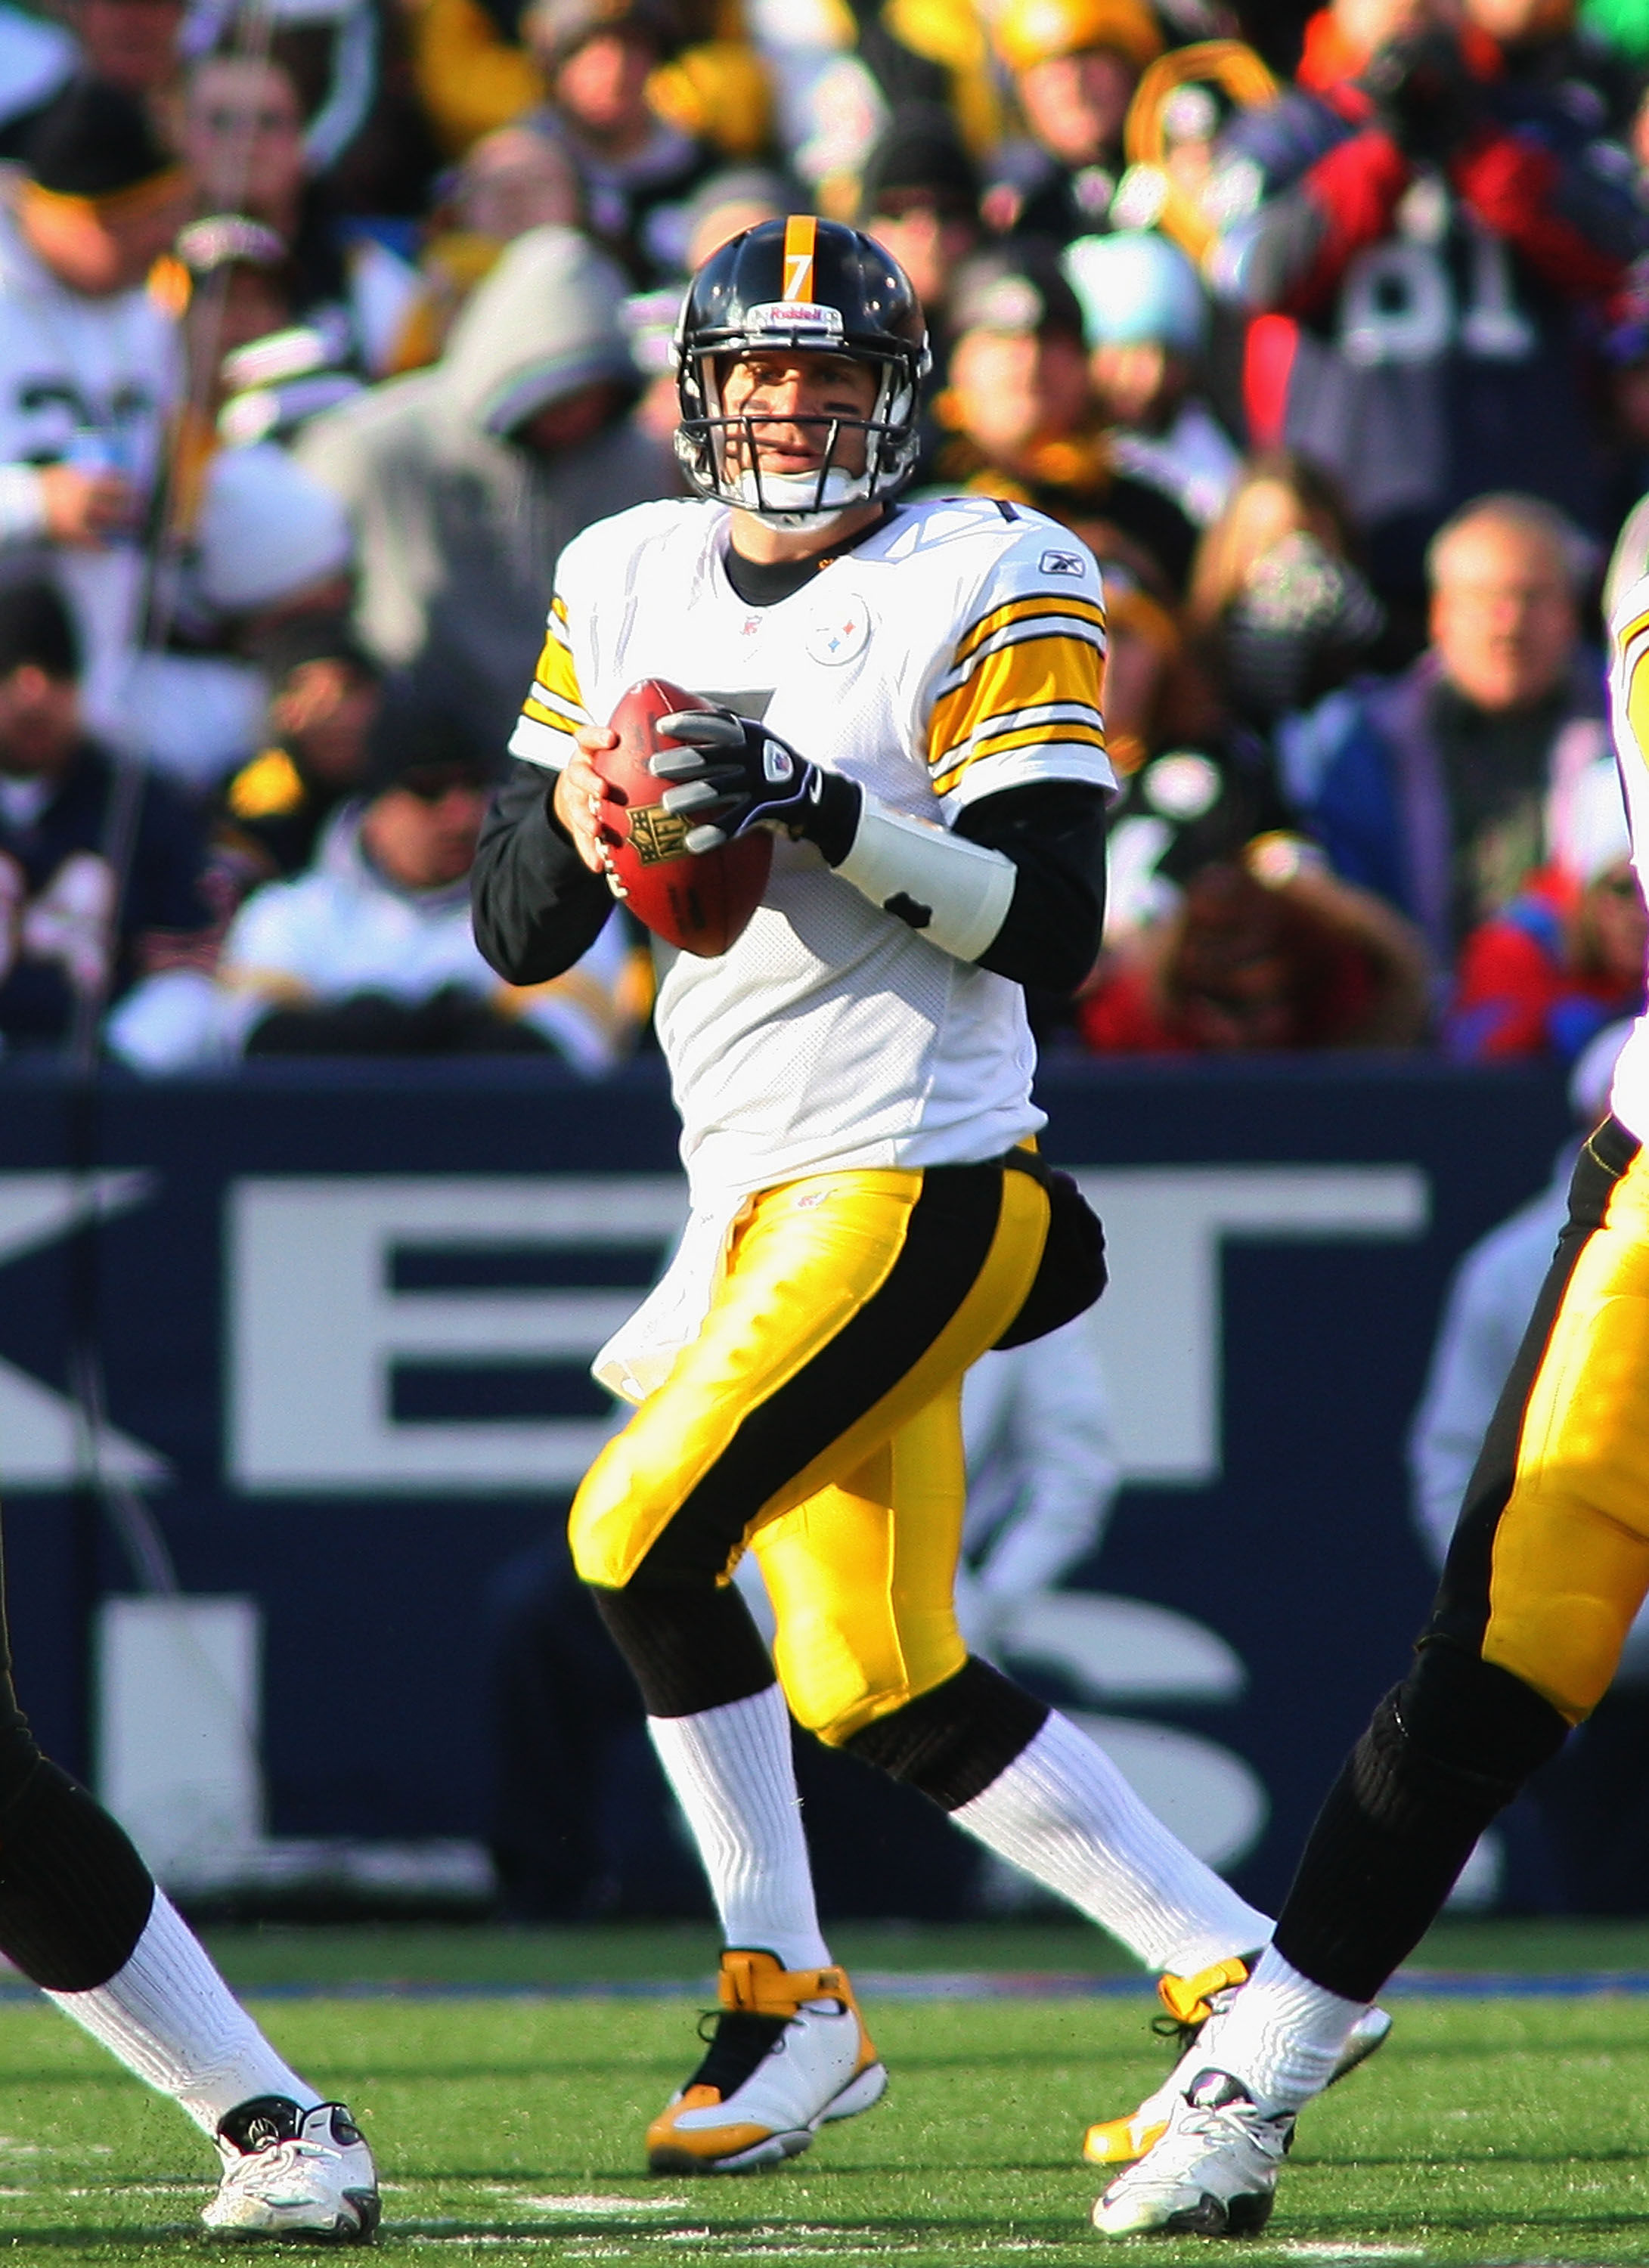 ORCHARD PARK, NY - NOVEMBER 28:  Ben Roethlisberger #7 of the Pittsburgh Steelers looks to throw against the Buffalo Bills  at Ralph Wilson Stadium on November 28, 2010 in Orchard Park, New York. Pittsburgh won 19-16 in overtime.  (Photo by Rick Stewart/G